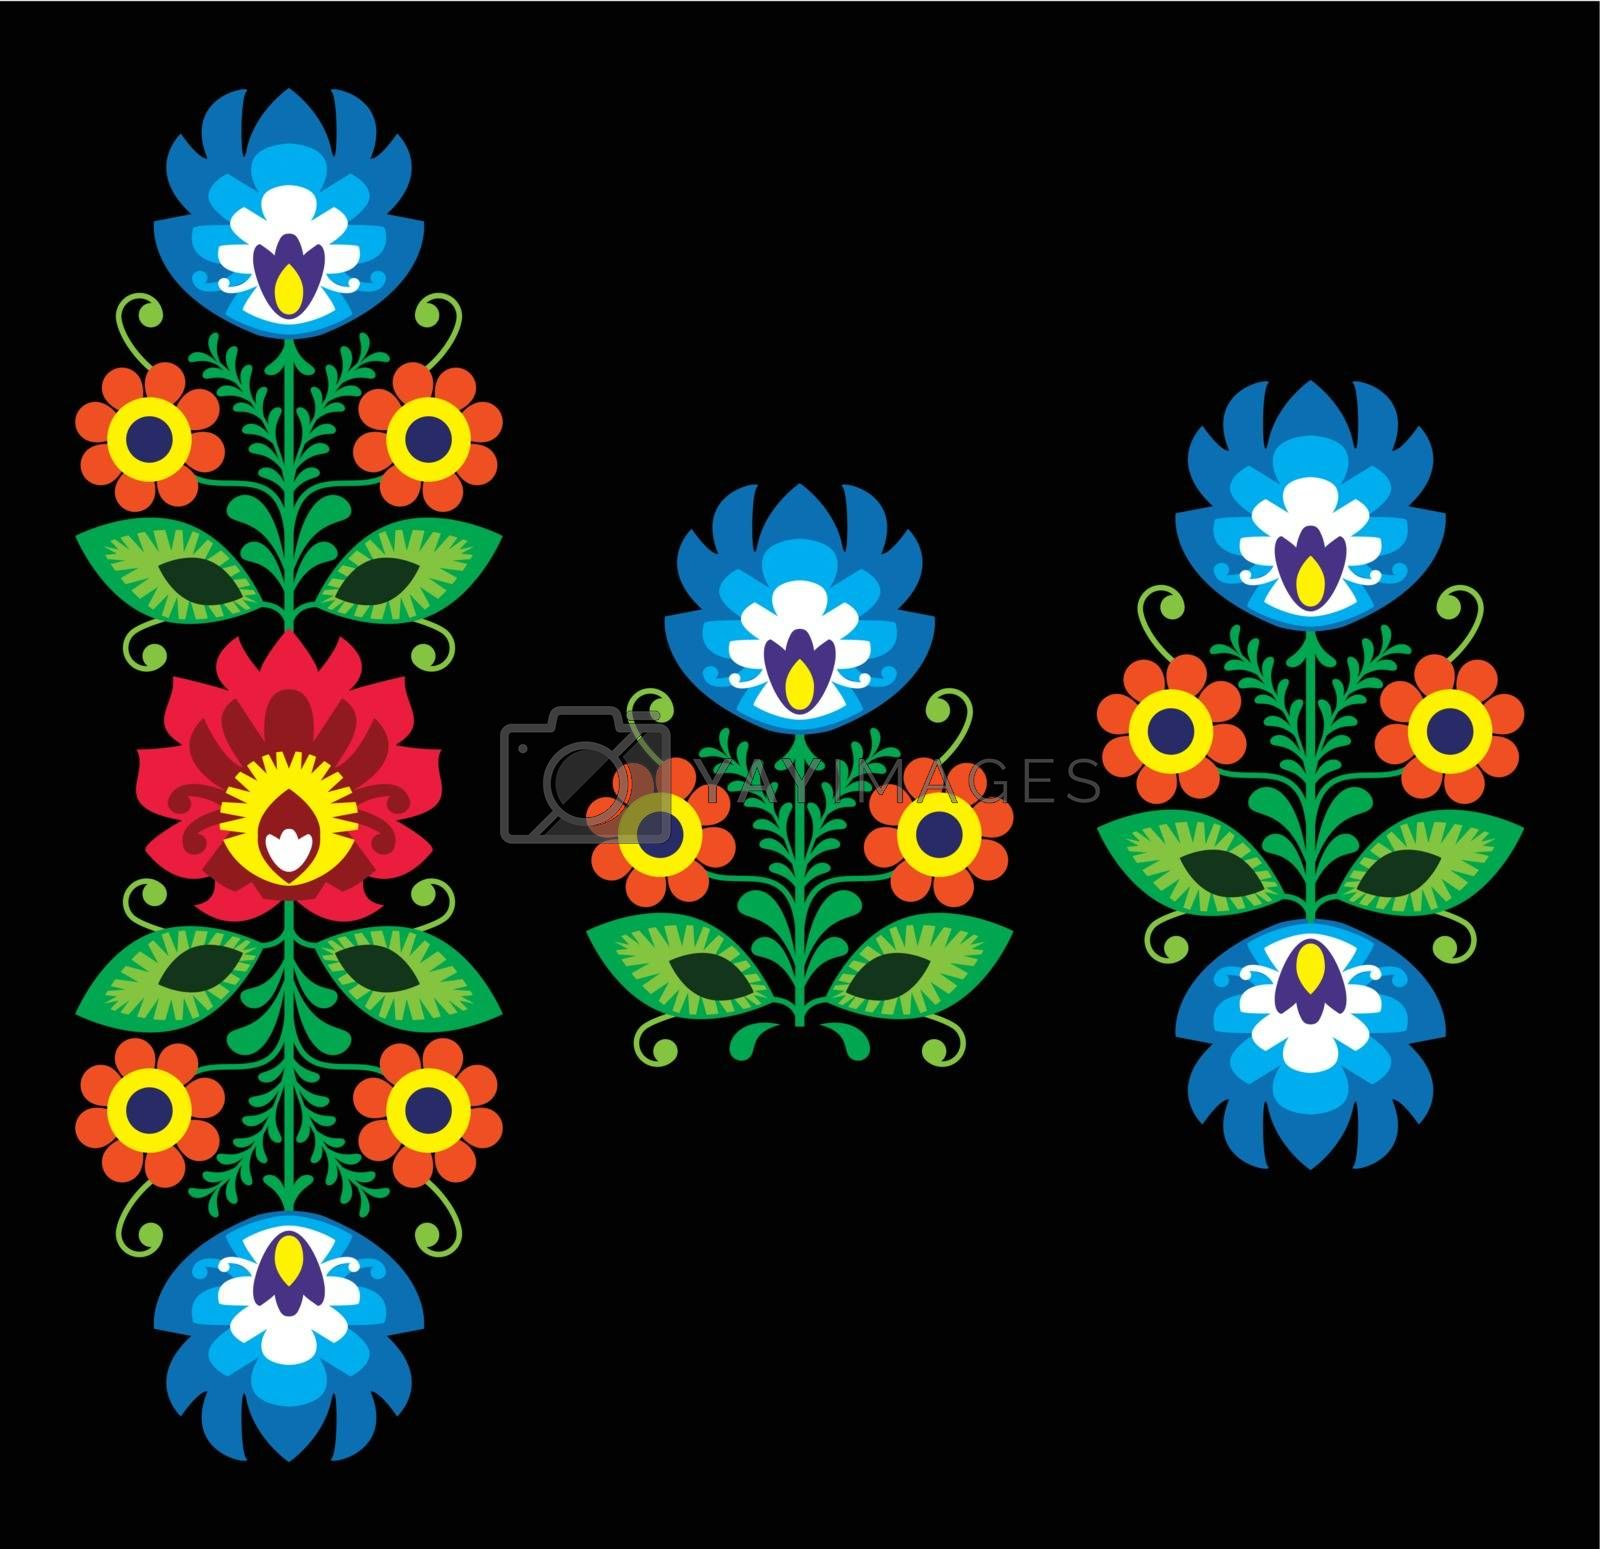 Royalty free image of Folk embroidery with flowers - traditional Polish pattern Wzory Lowickie by RedKoala